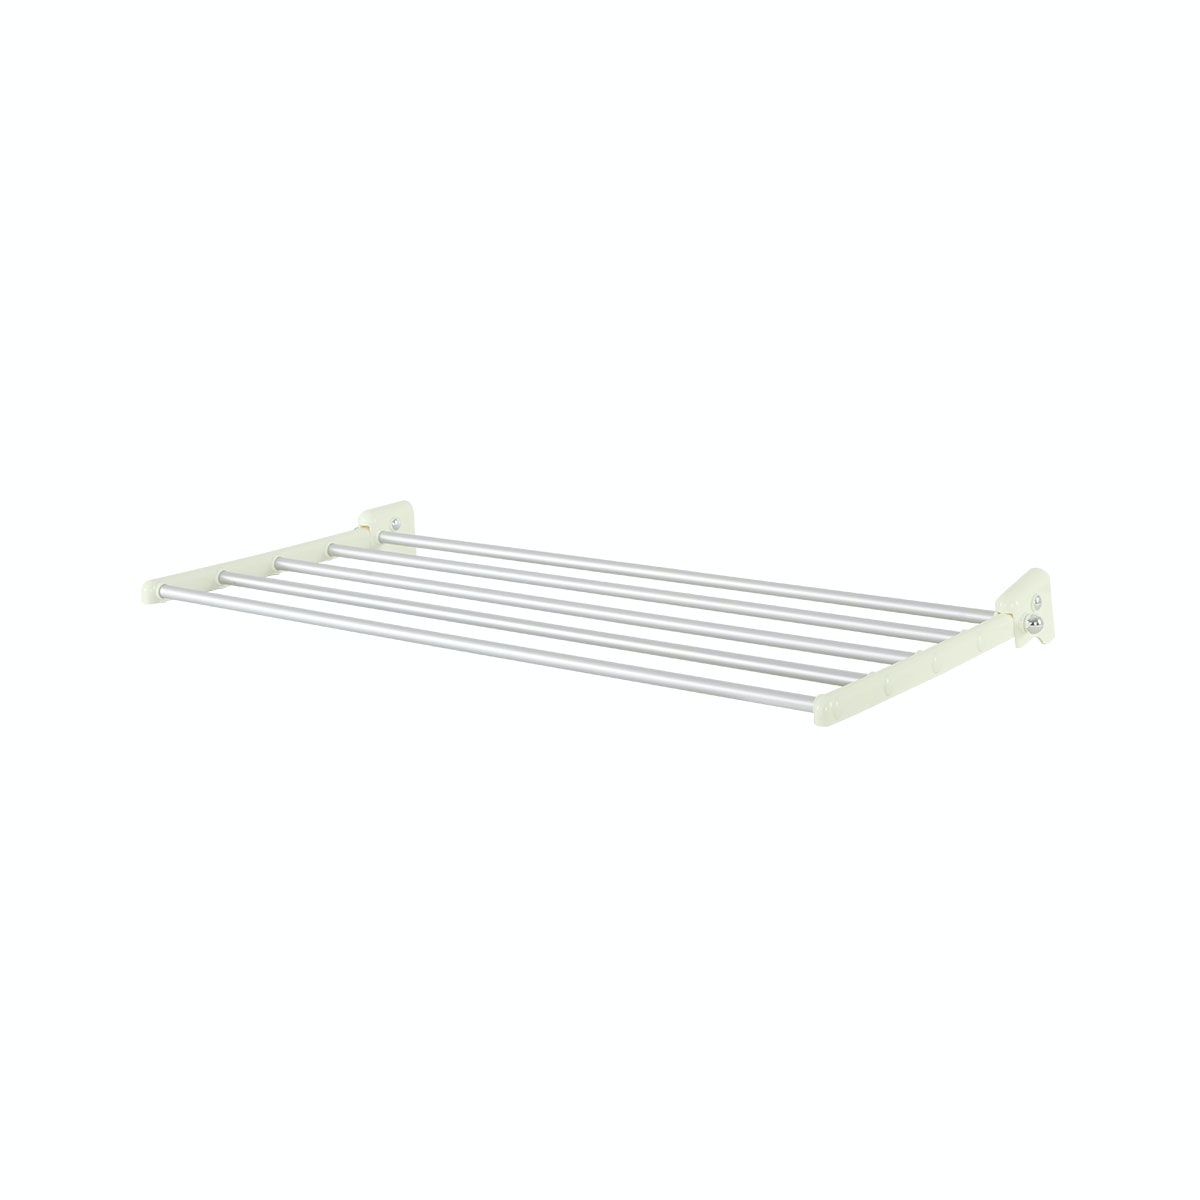 Mami1 Wall Towel Rack M-685